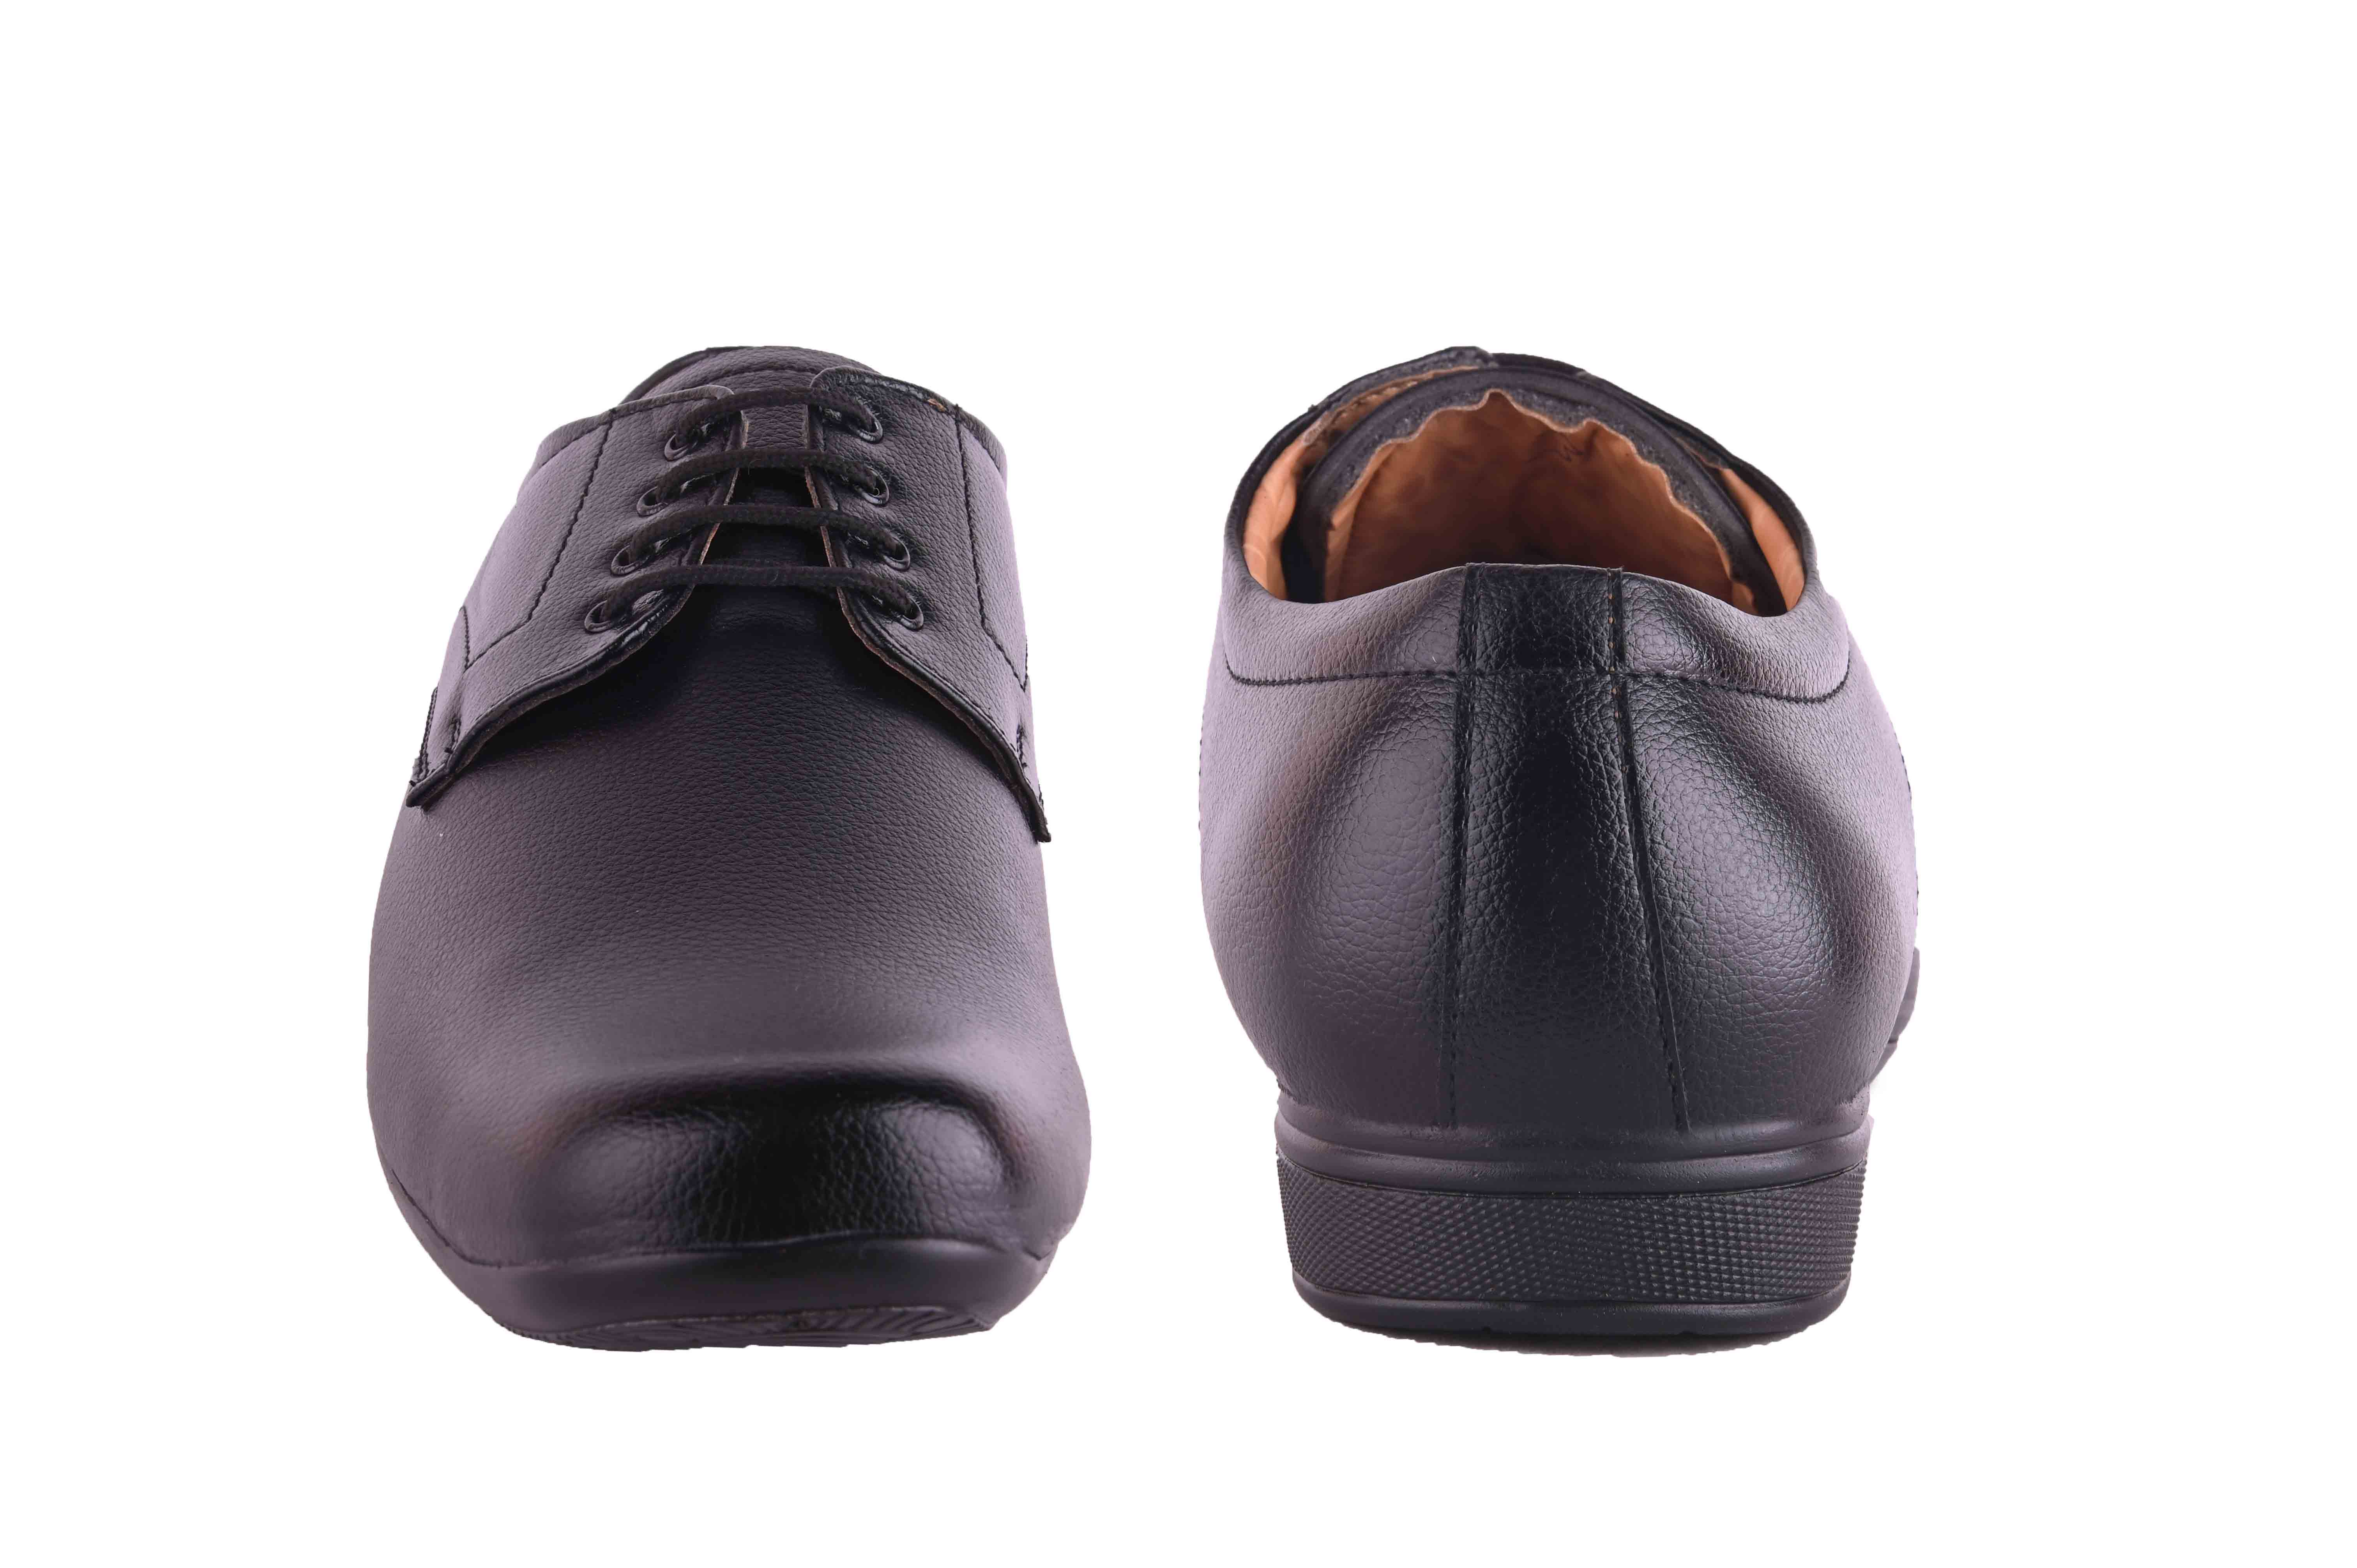 Almighty Black Men's Formal Shoes Derby For Men BBDBLK (BLACK, 6-10, 8 PAIRS)